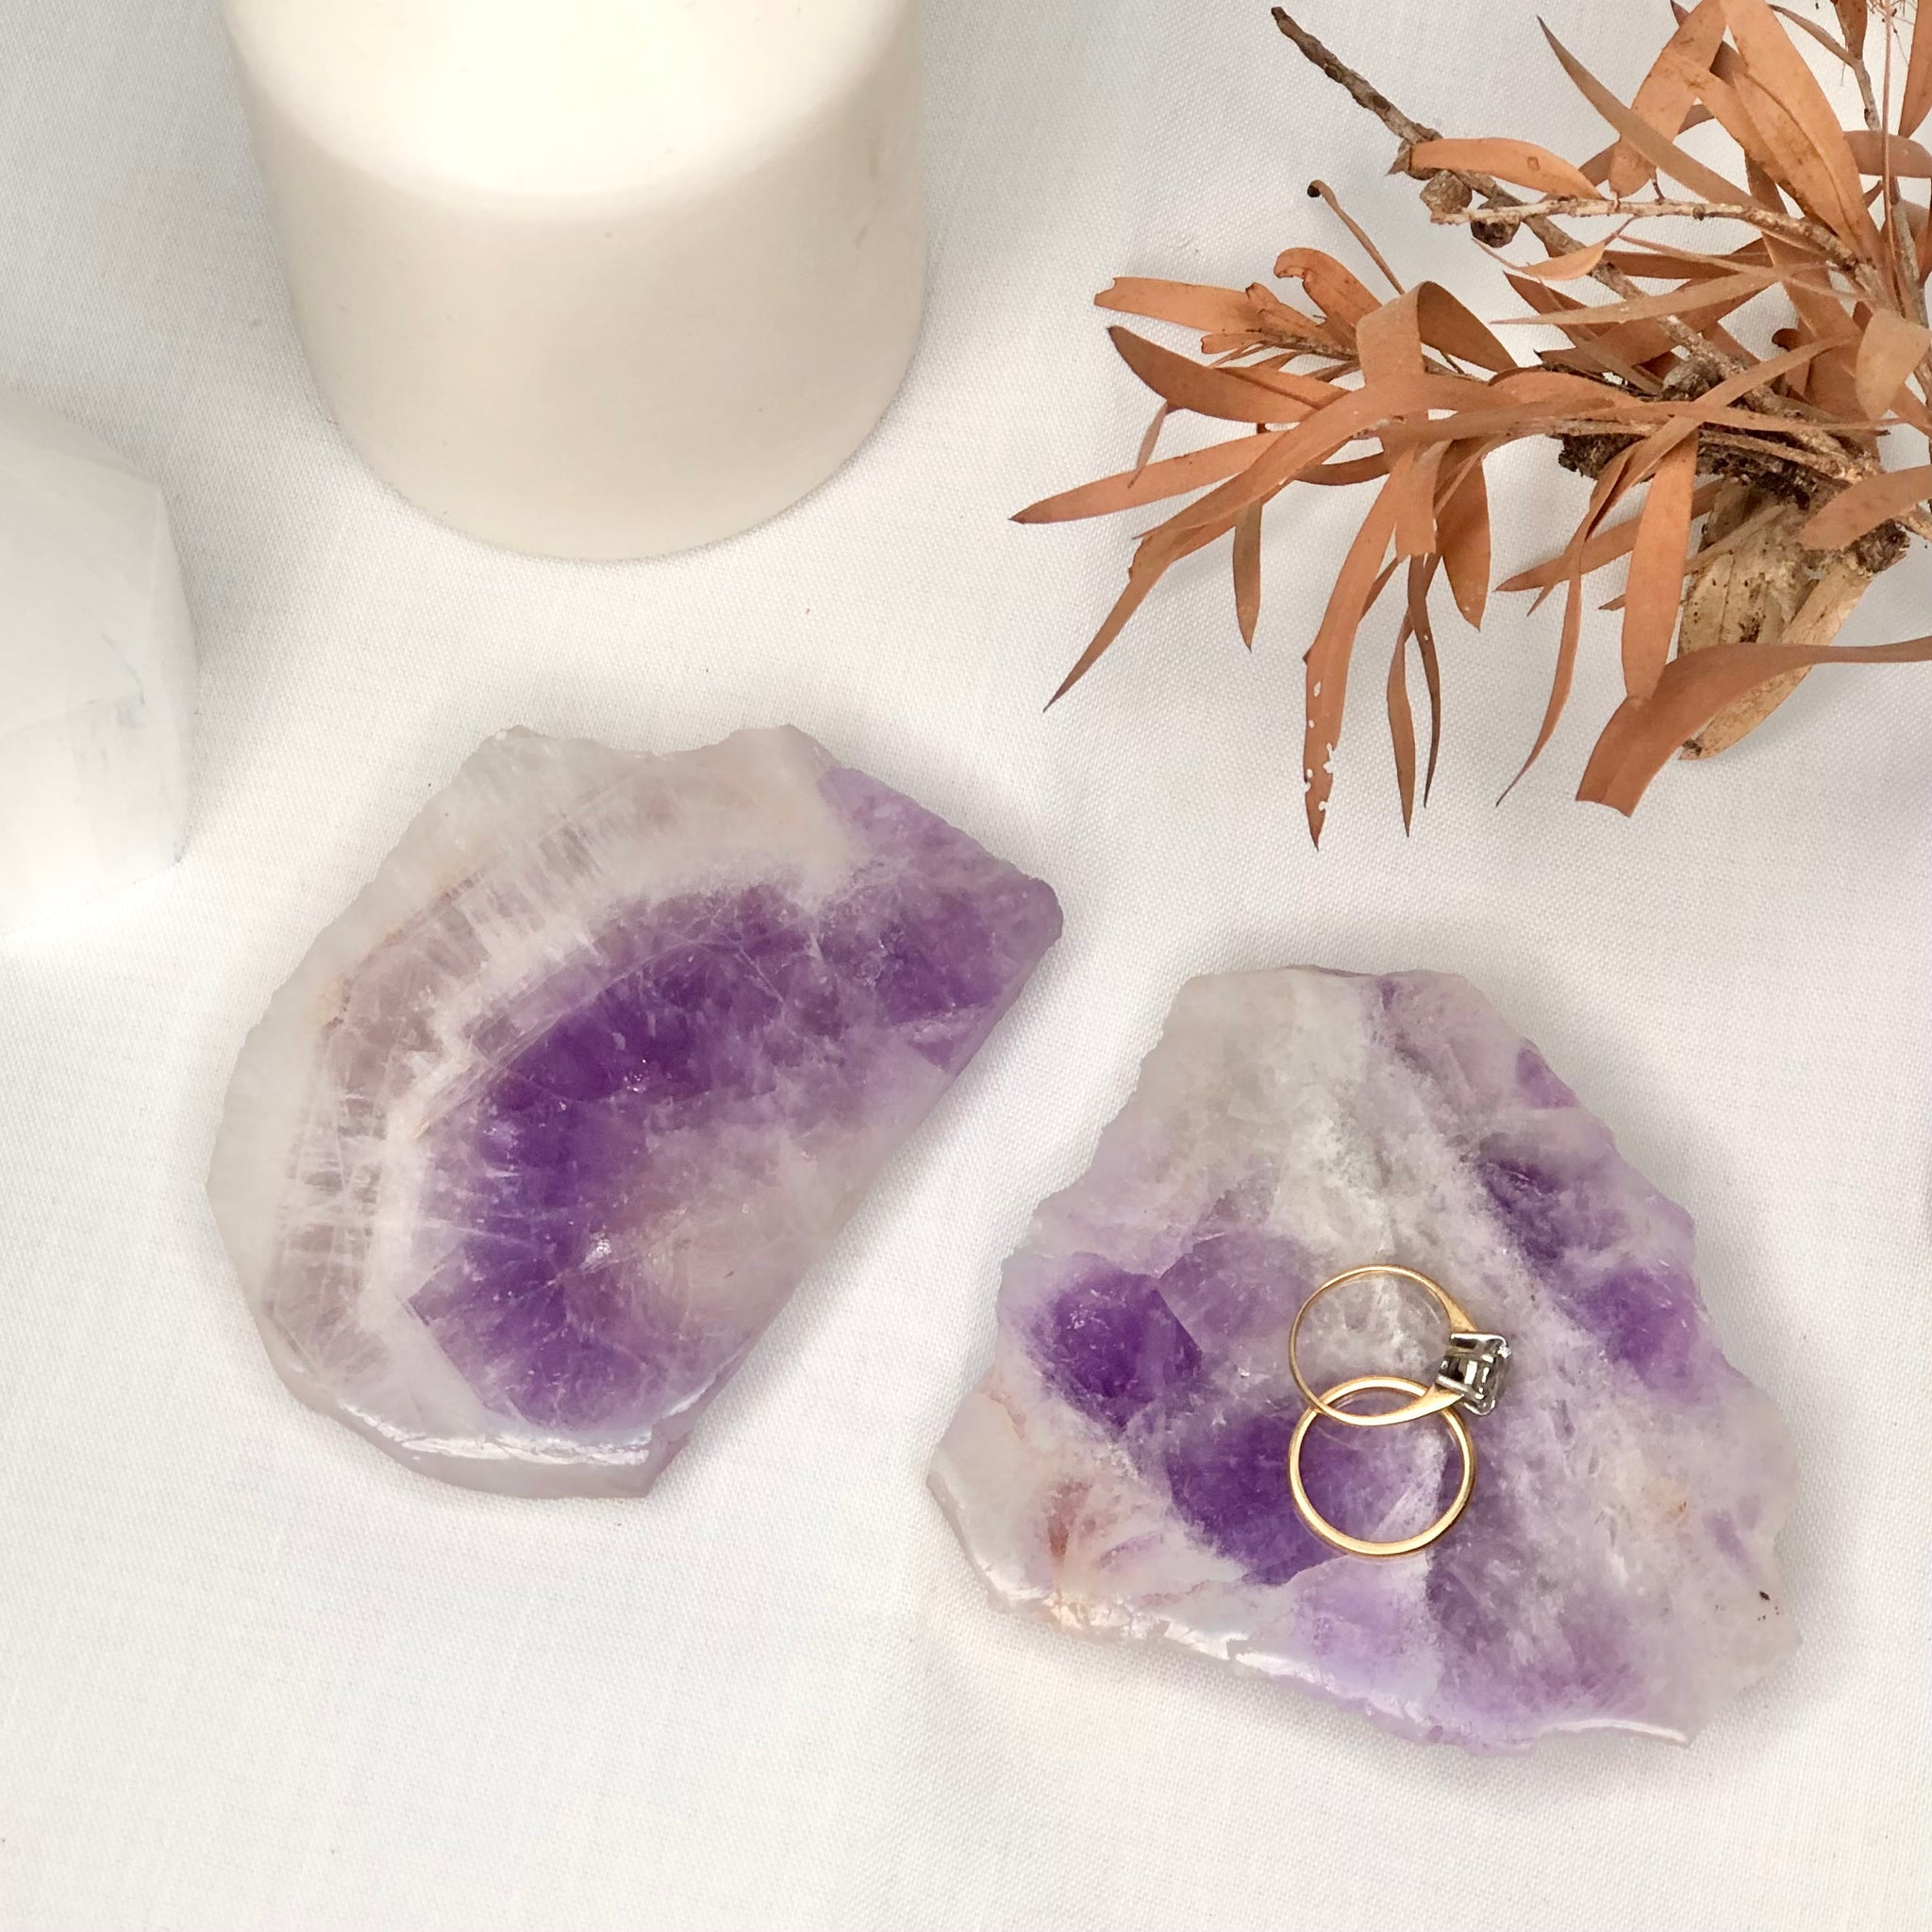 Gift, decor and crystal shop Australia: Amethyst slice slab / ring tray